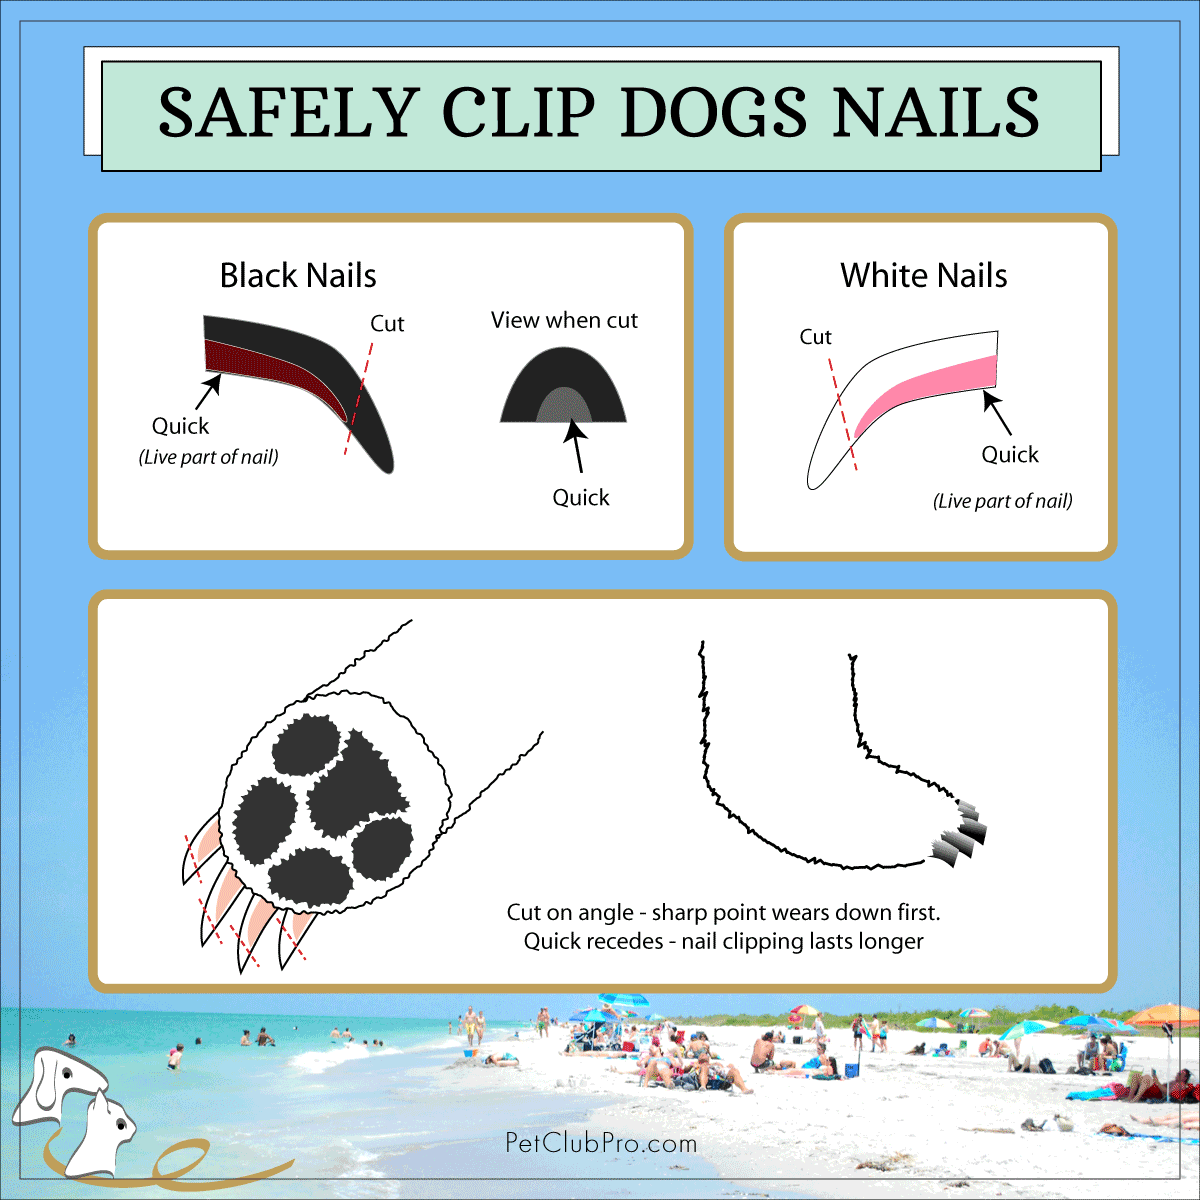 safely clip dogs nails | Pit Bull Mom | Pinterest | Dog nails, Pet ...